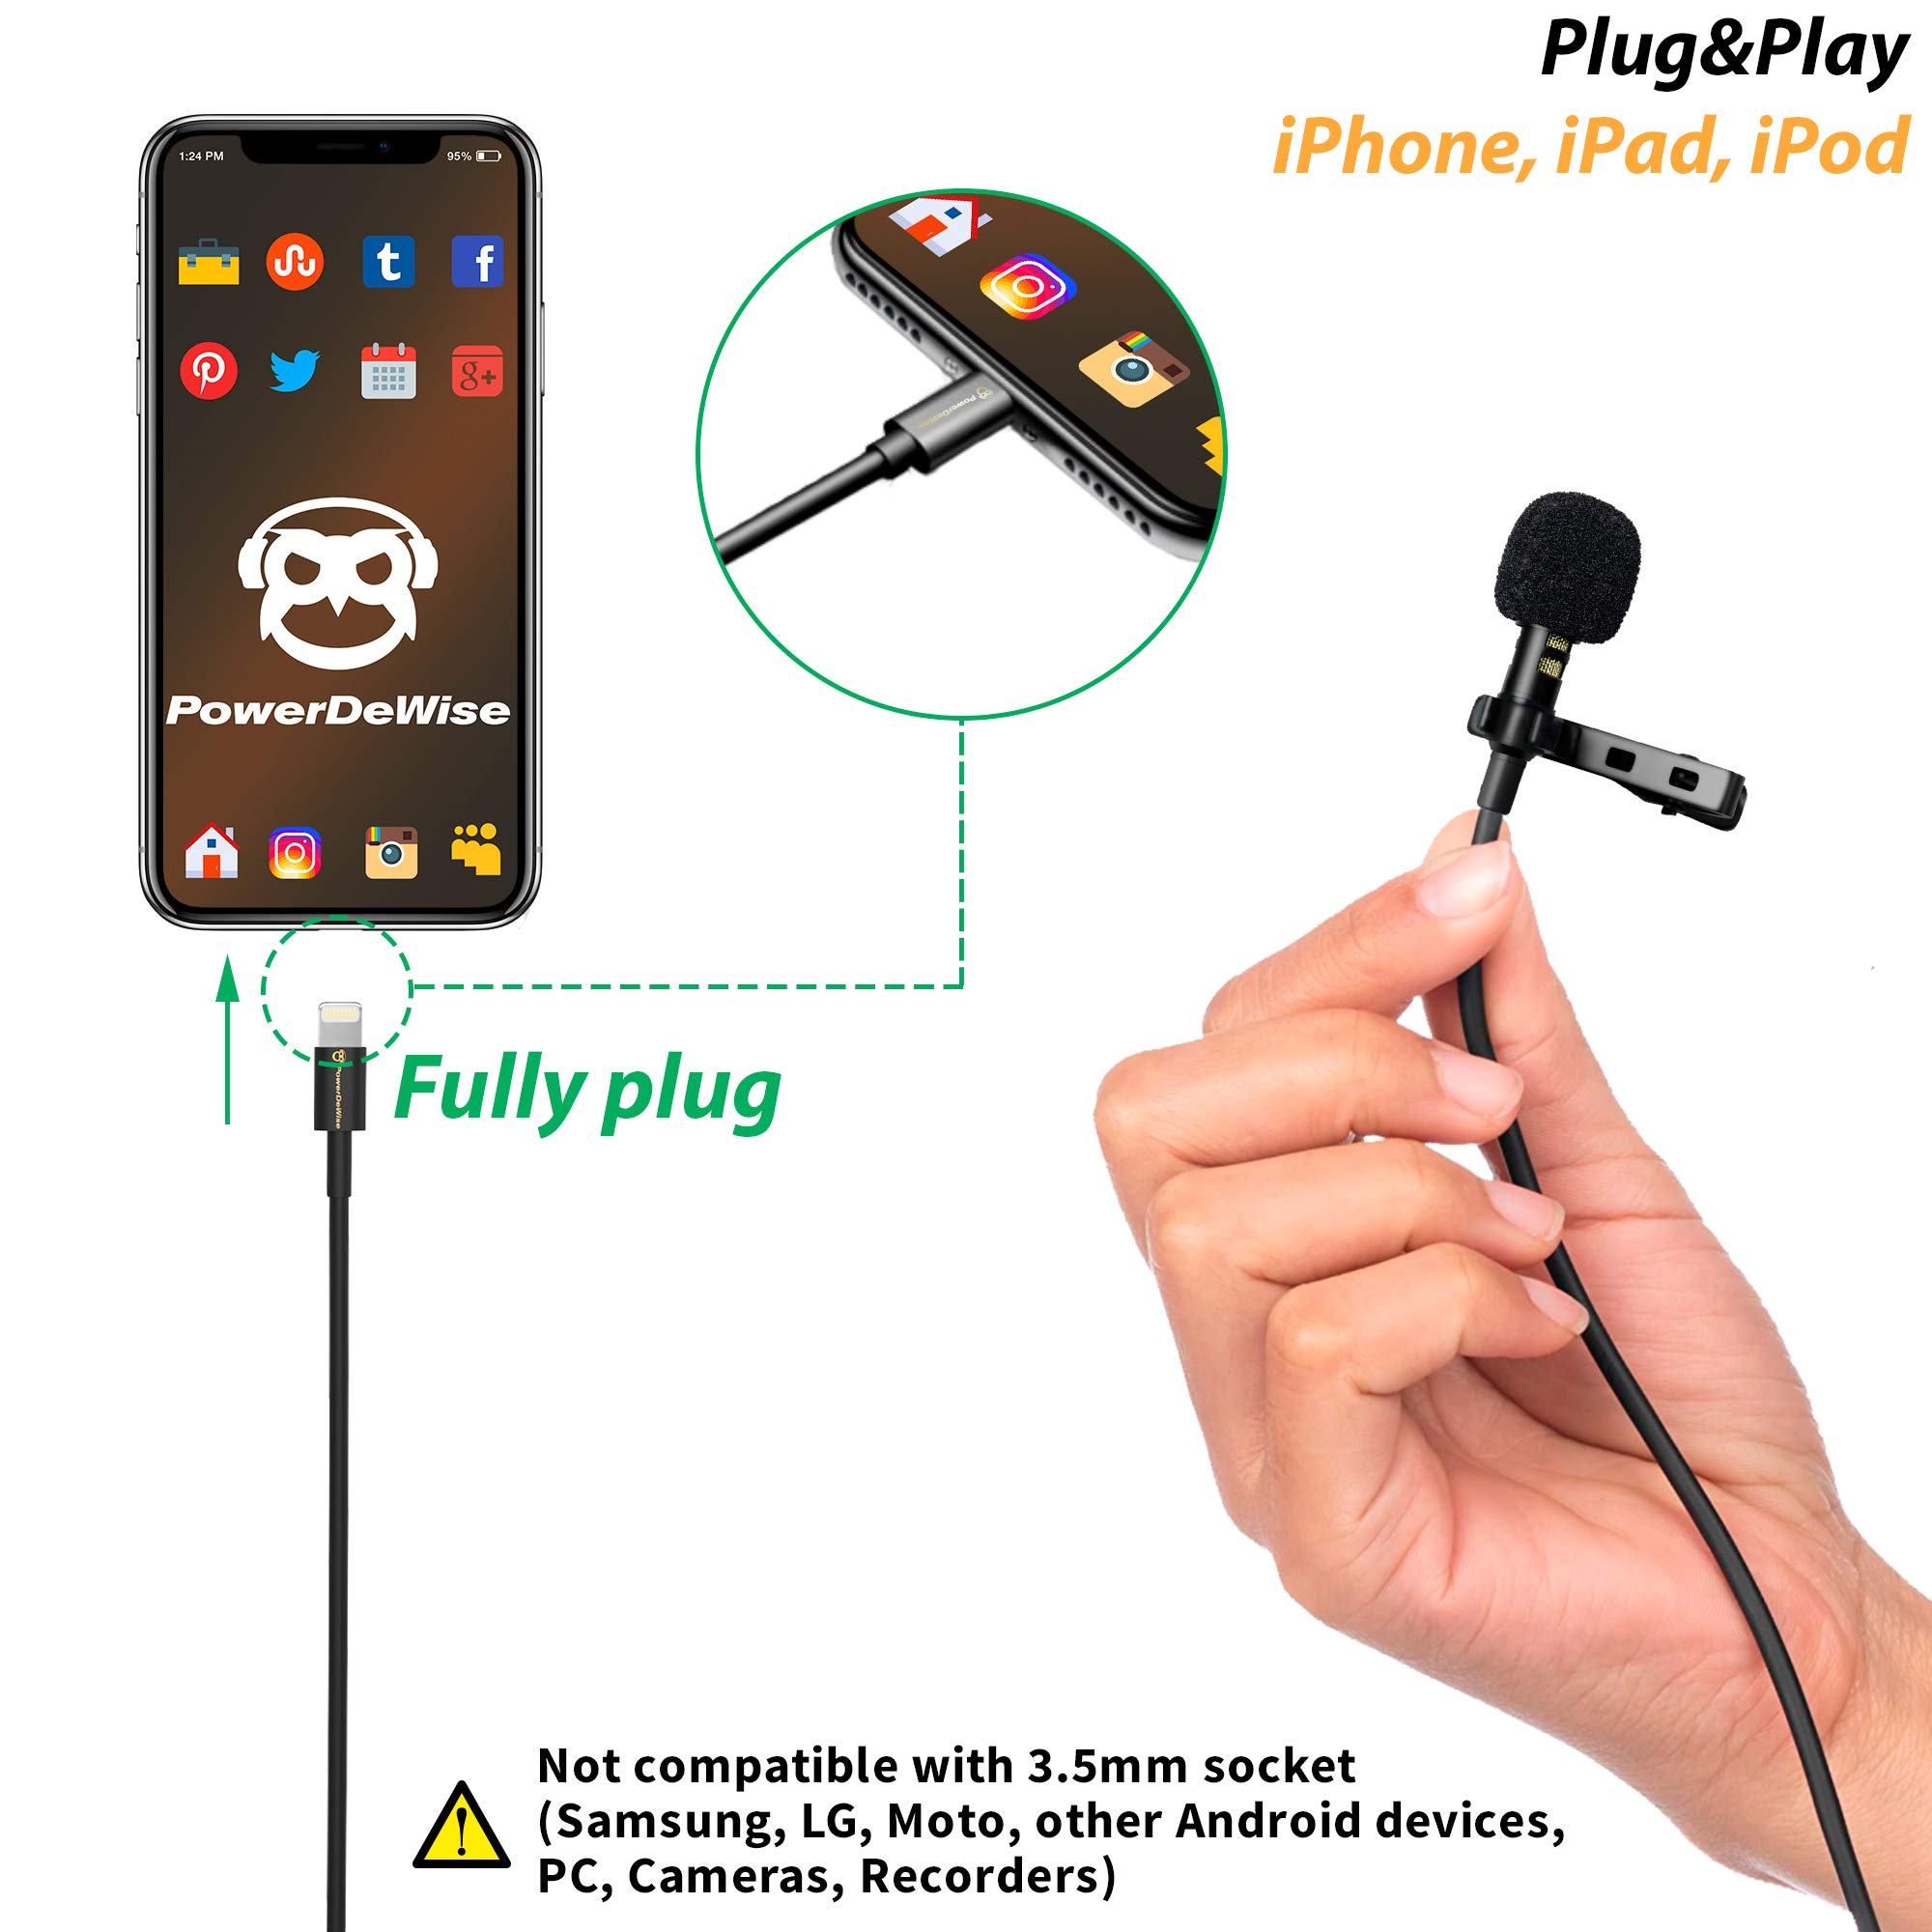 PowerDeWise Microphone for iPhone with Lightning Connector - iPhone Lightning Microphone - Excellent Mic iPhone 6 7 8 X by PowerDeWise (Image #5)